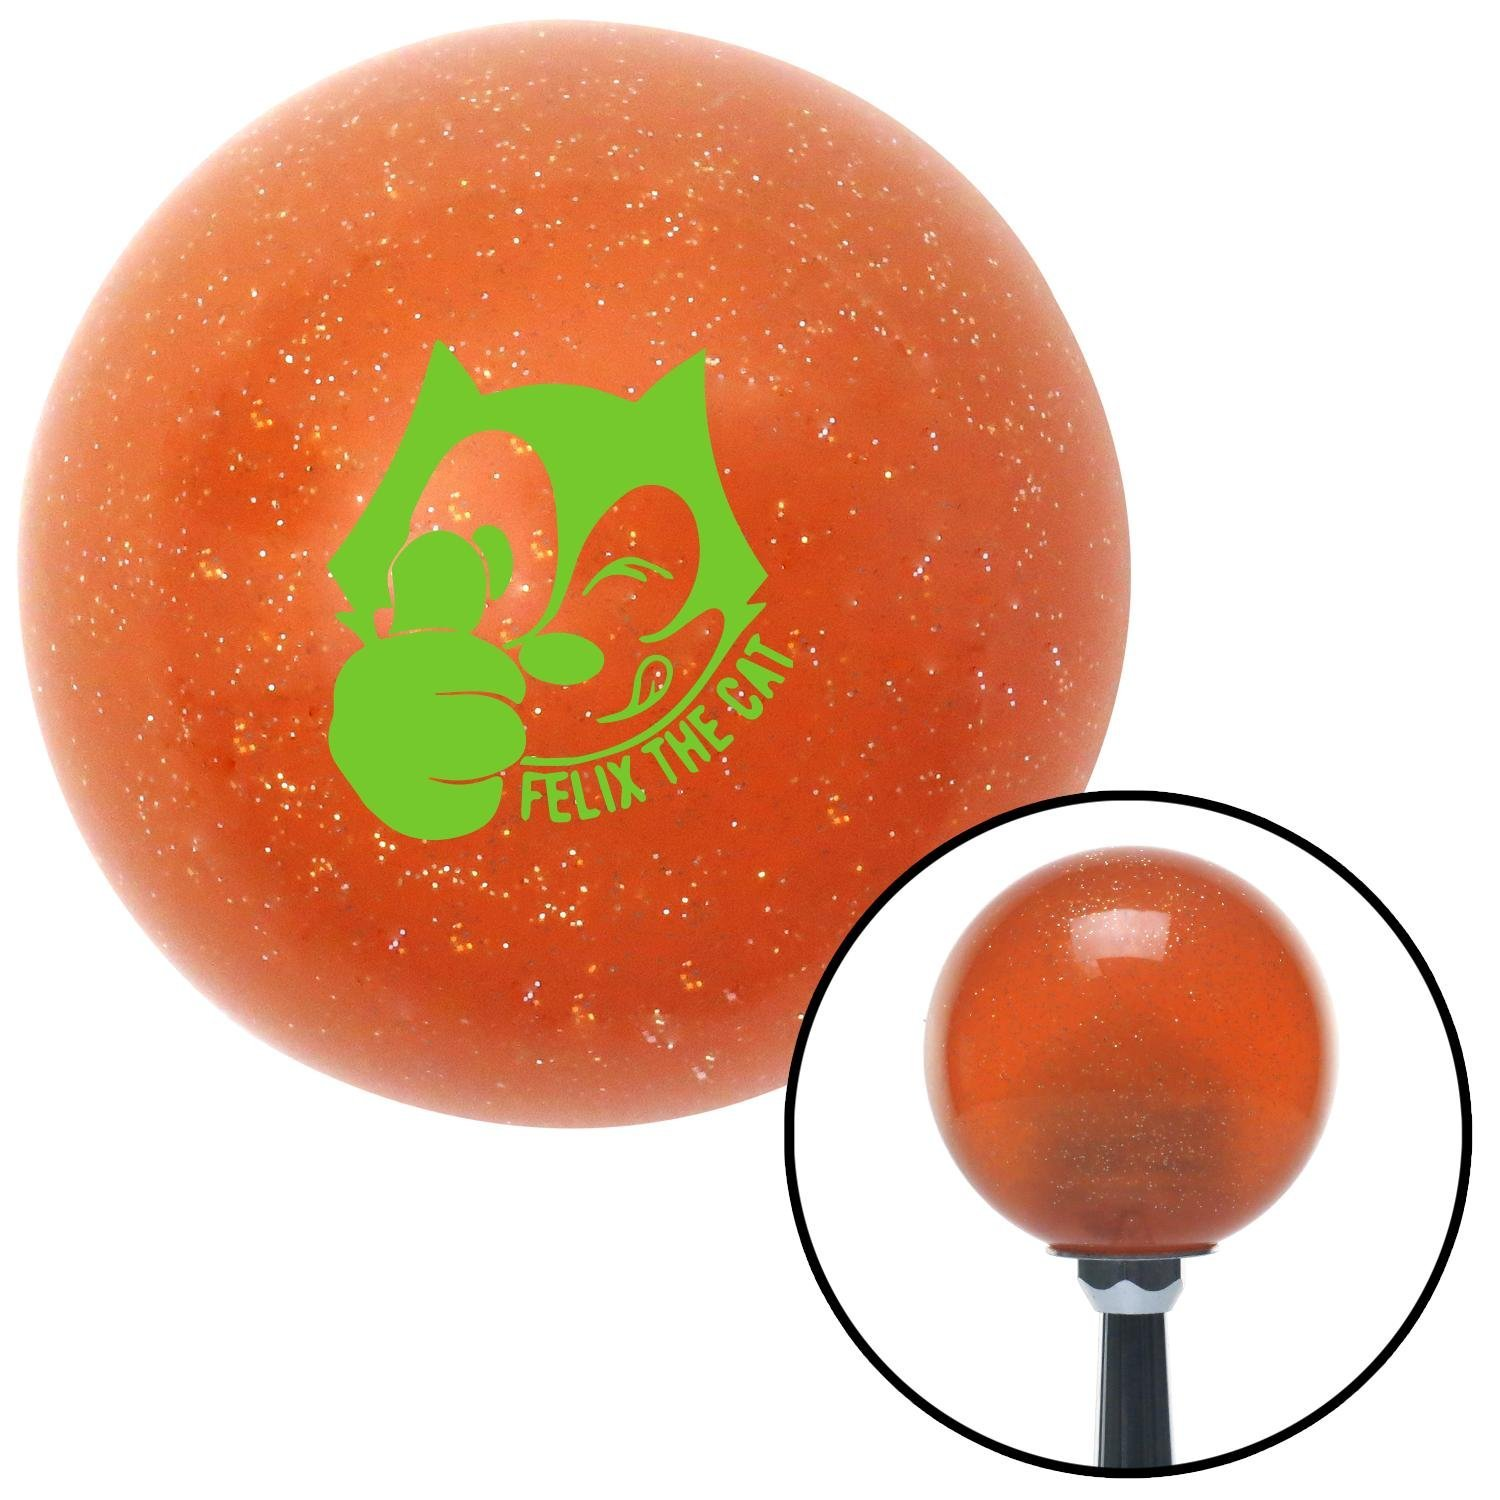 American Shifter 46032 Orange Metal Flake Shift Knob with 16mm x 1.5 Insert Green Felix The Cat Thumbs Up